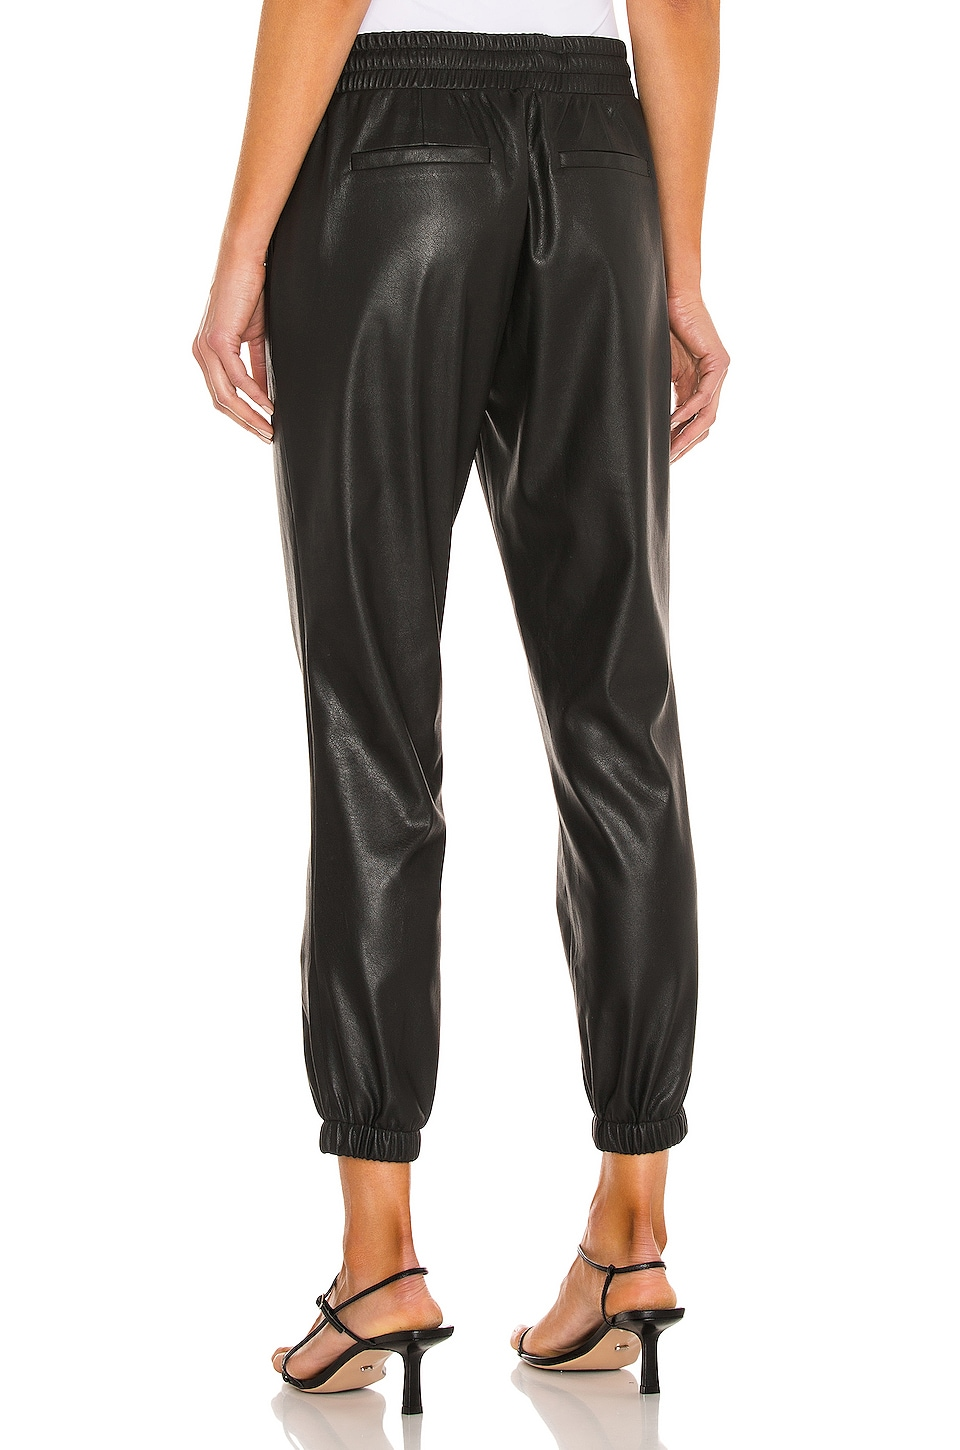 Scarlett Leather Jogger, view 3, click to view large image.